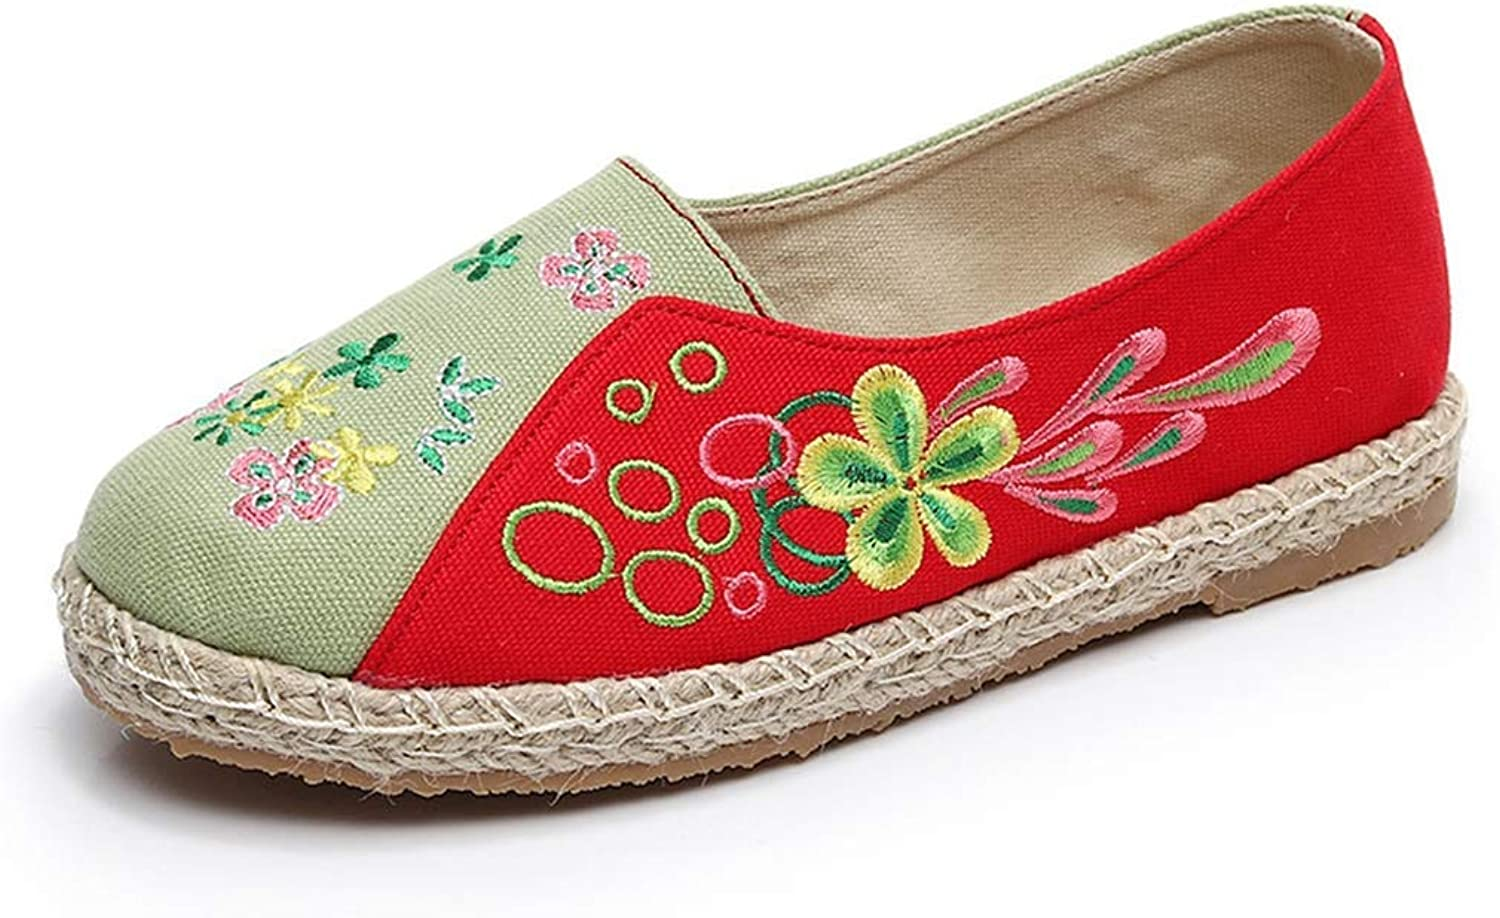 Elsa Wilcox Women Embroidery Flowers Style Slip on Loafers Comfortable Ballet Flats Loafer Embroidered shoes